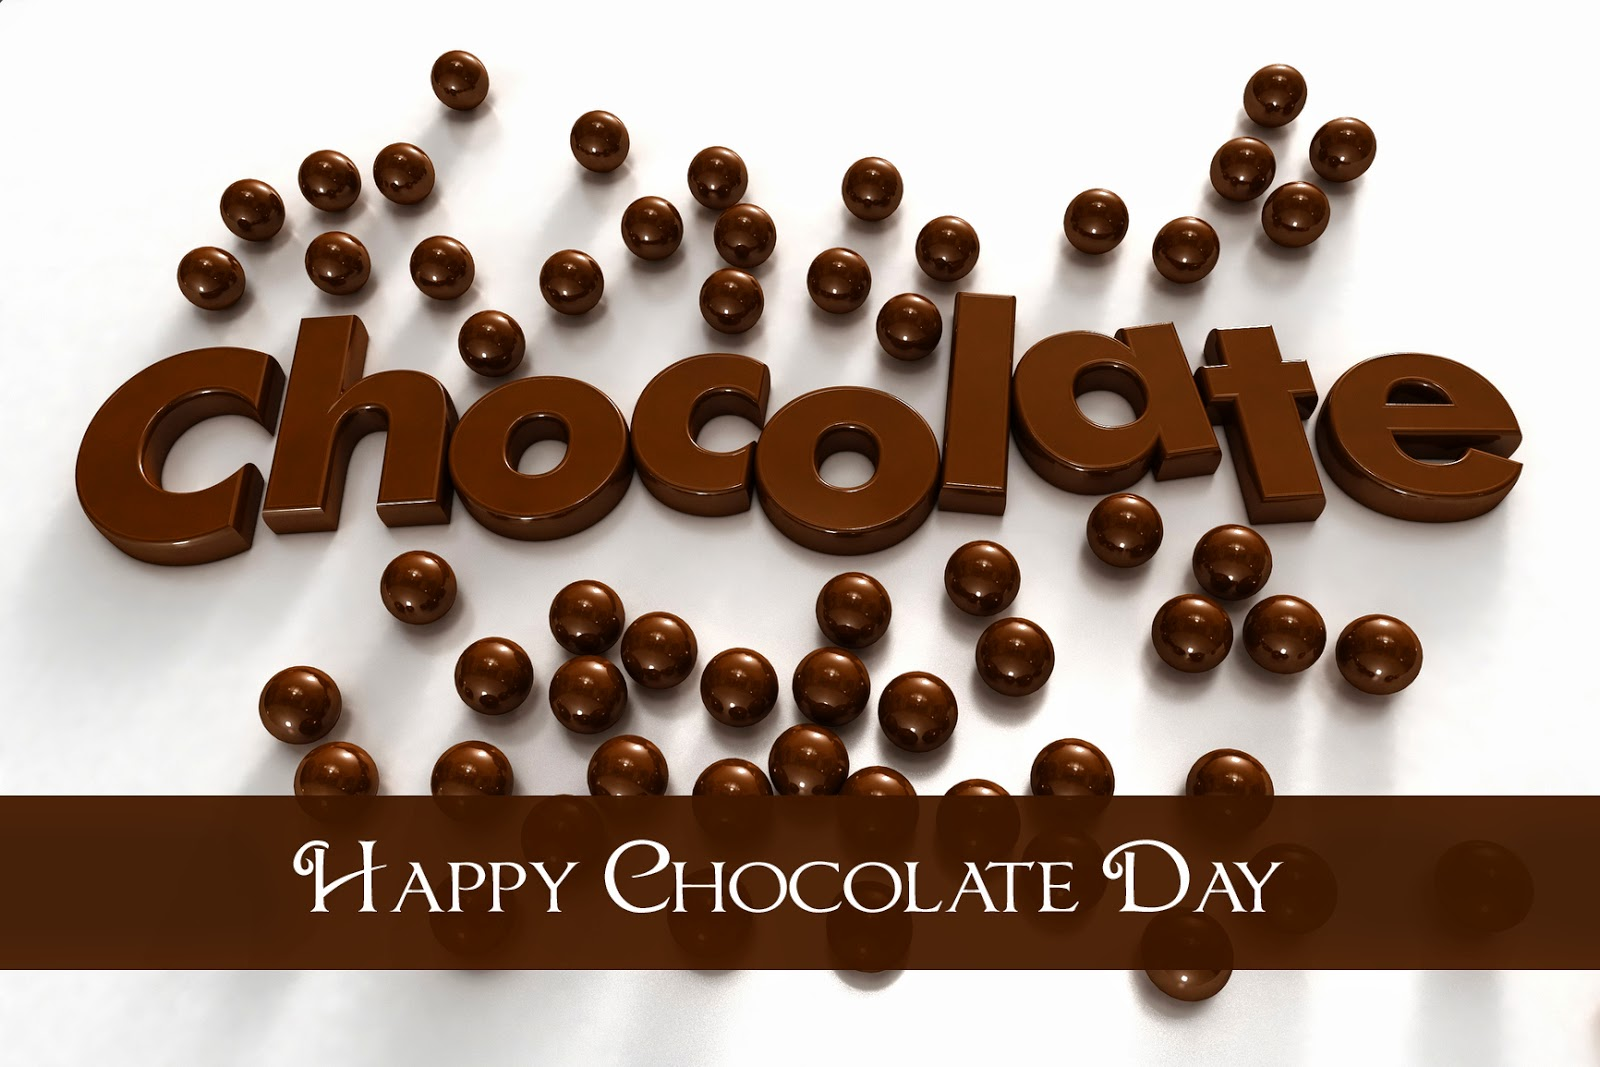 Happy Chocolate Day Images Quotes Sms 2015 | Free recharge ...